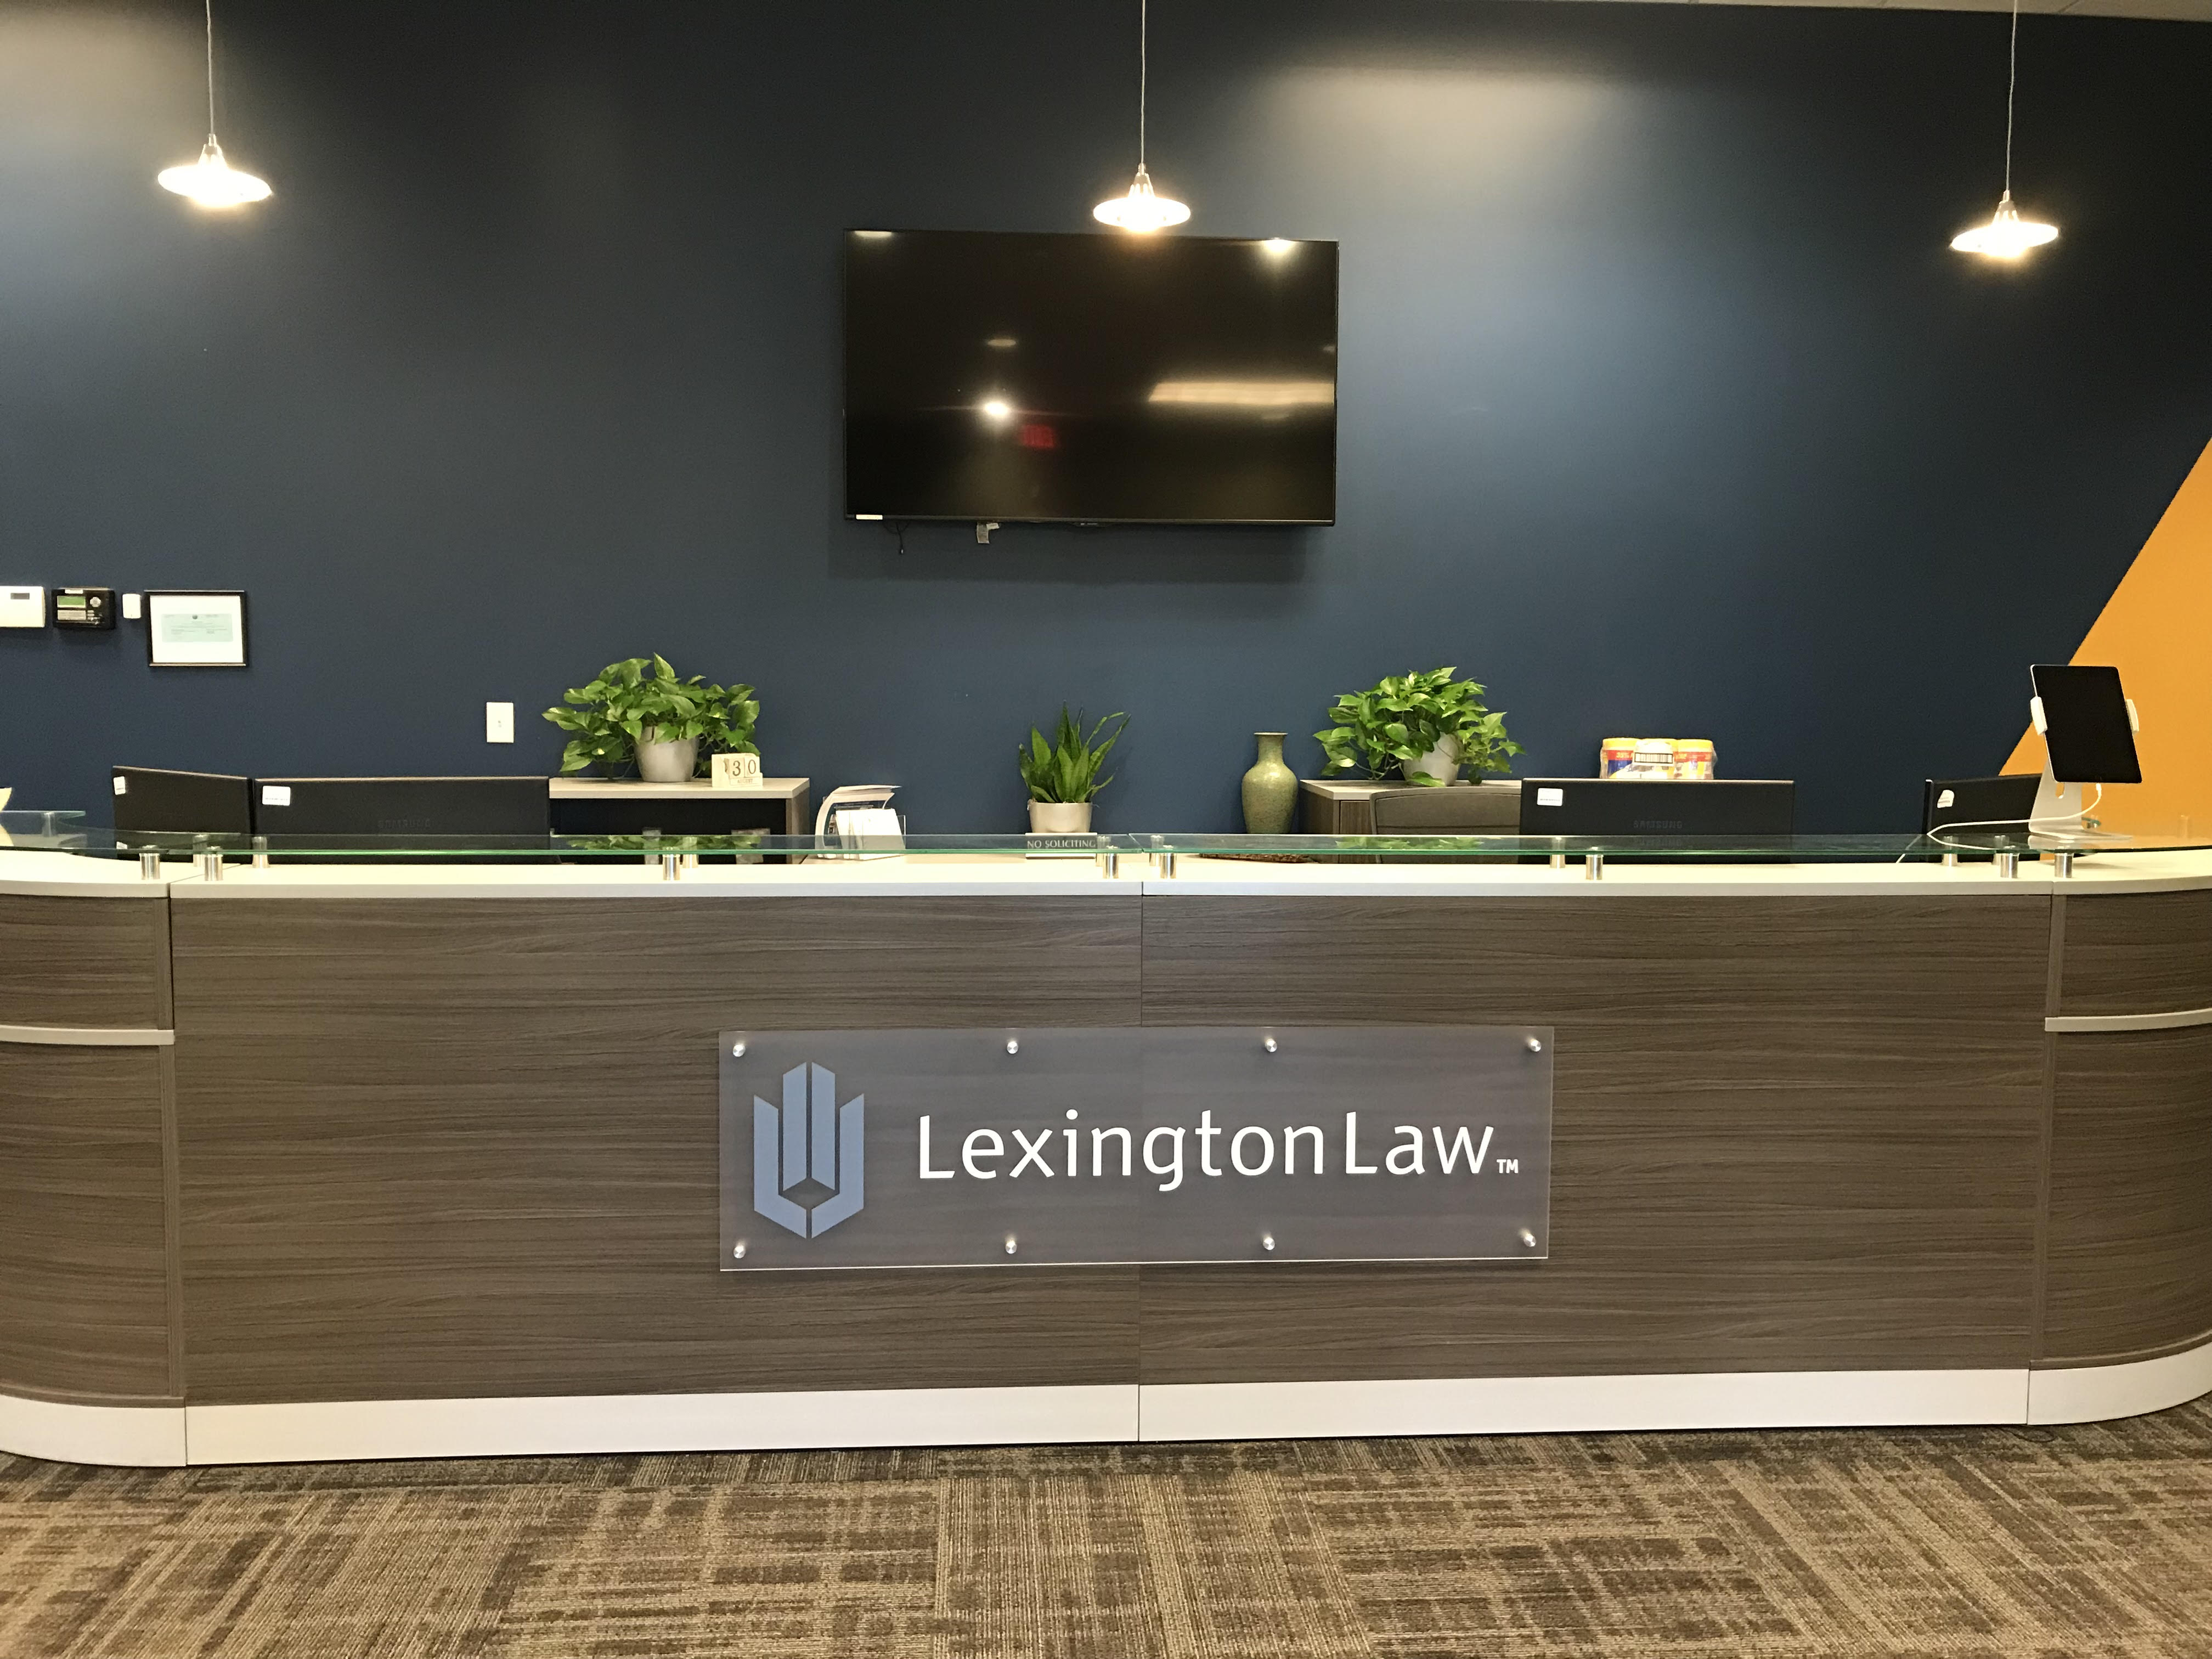 frosted plexiglass signage printed by Artisan Colour for Lexington Law